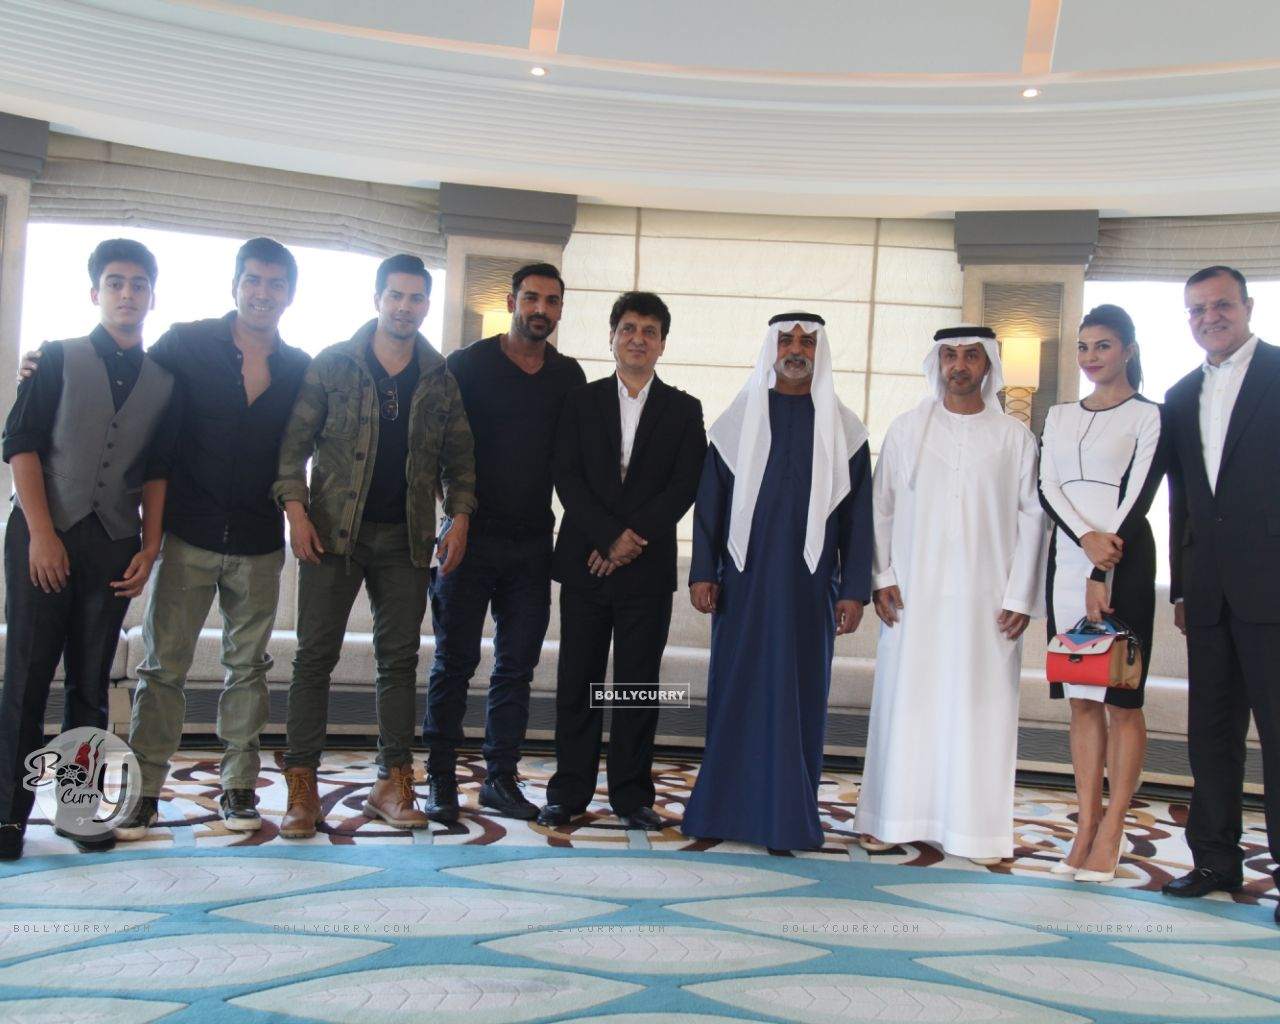 Dishoom Team At the Royal luncheon in Abu Dhabi (393736) size:1280x1024